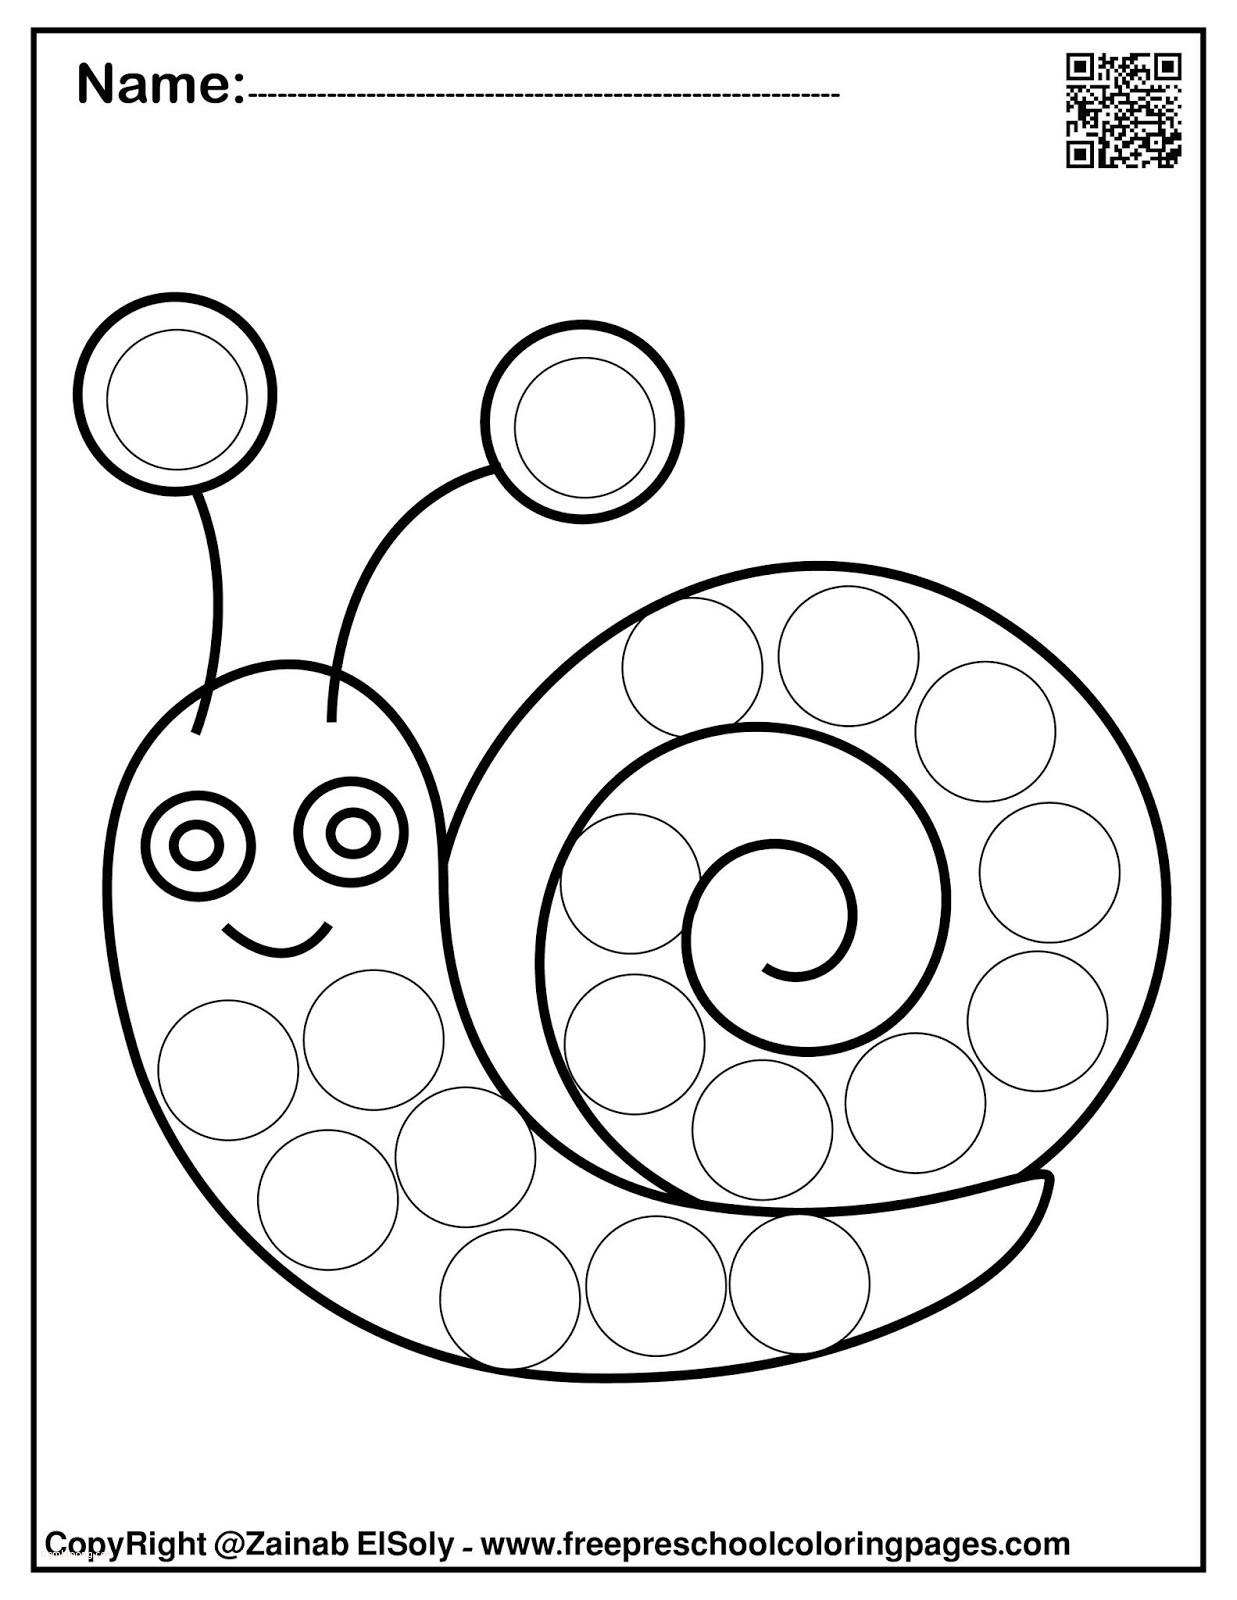 Dot to Dot Art Printables Freering Pages Pdf Spring Elegant Set Dot Marker